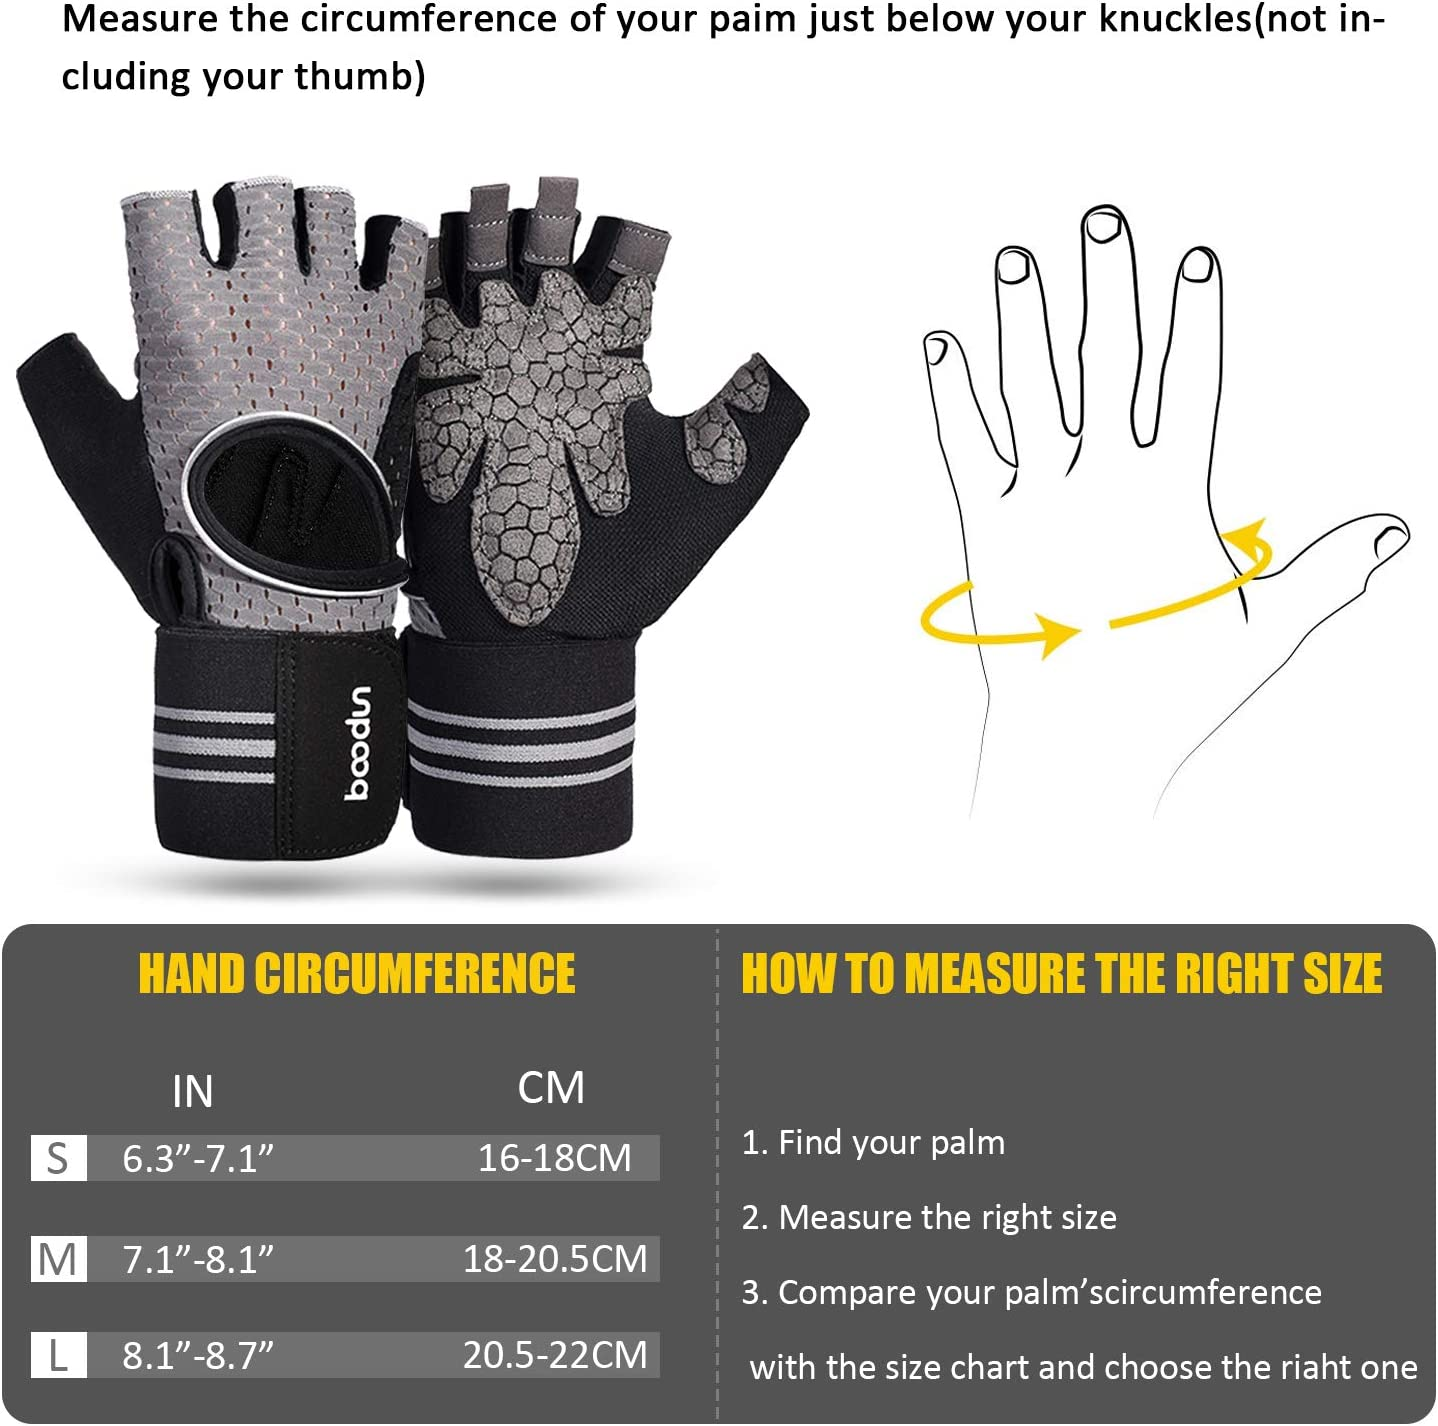 BOSONER Workout Gloves for Women Men,Training Gloves with Wrist Support for Exercise Fitness Riding Lifting Gym Weight